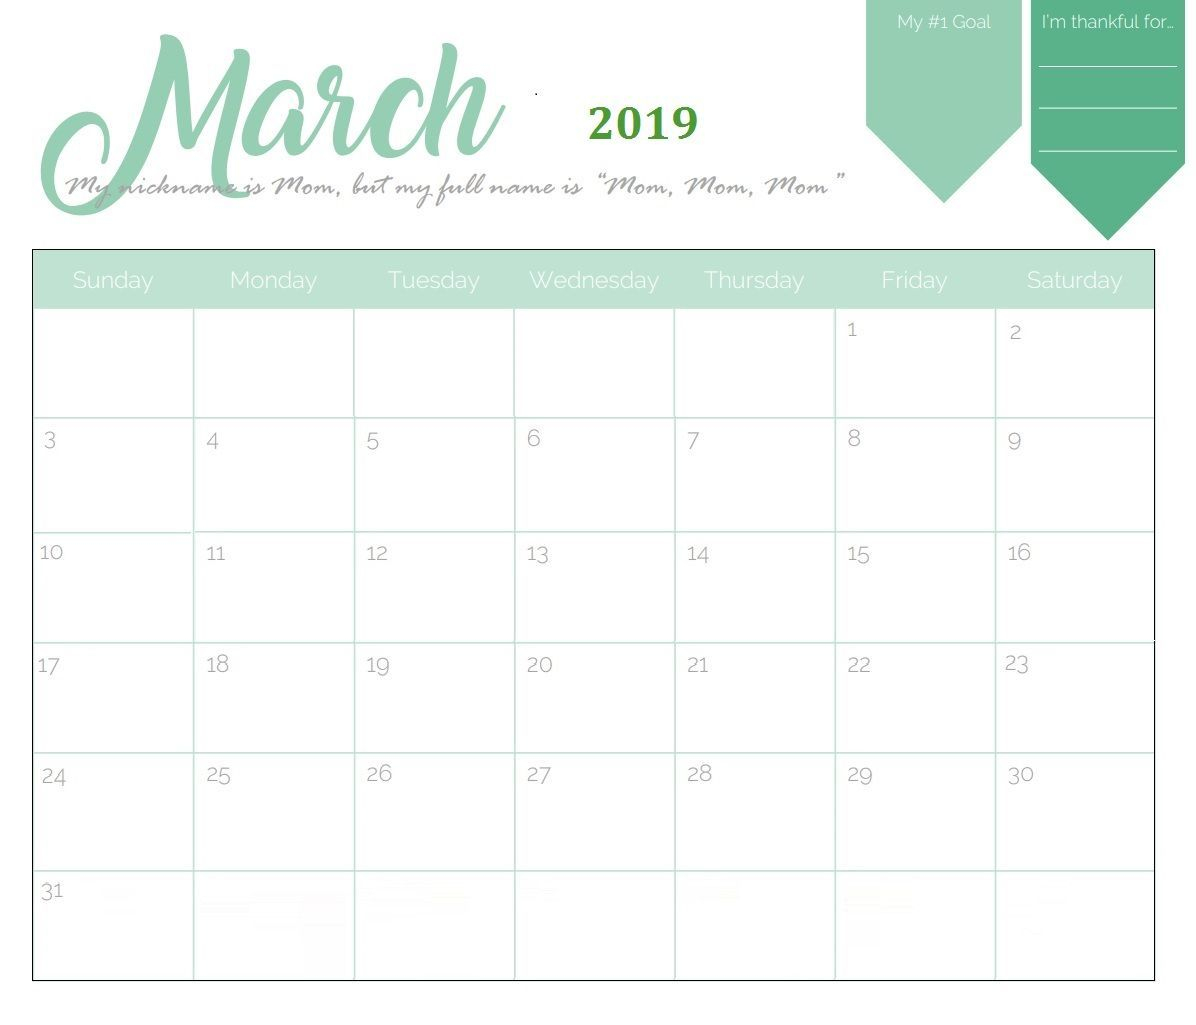 Unique March 2019 Calendar Template #march #marchcalendar